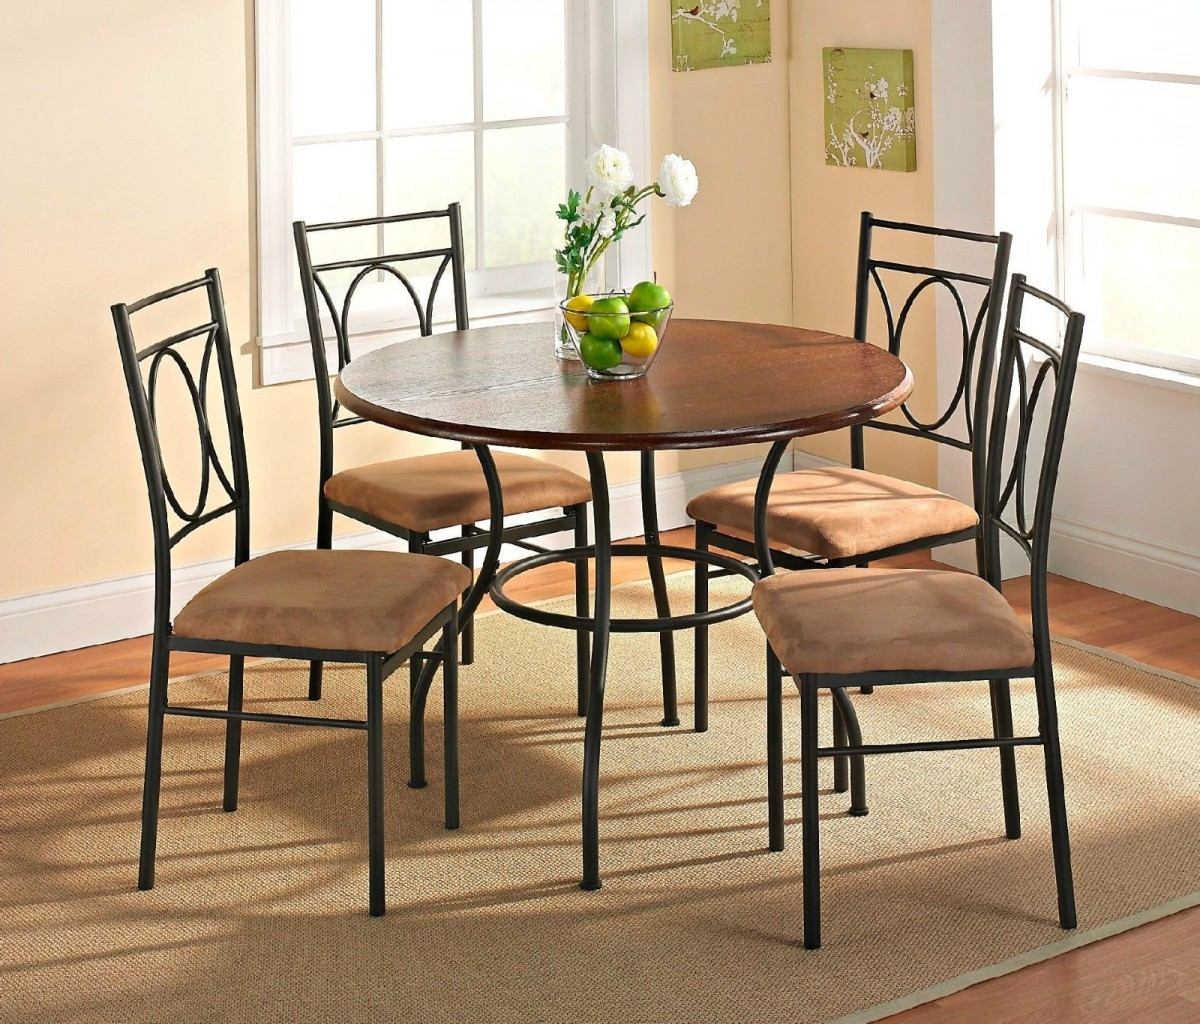 Fashionable Small Dining Tables And Chairs Intended For Small Room Design: Best Small Dining Room Table And Chairs Ashley (View 6 of 25)